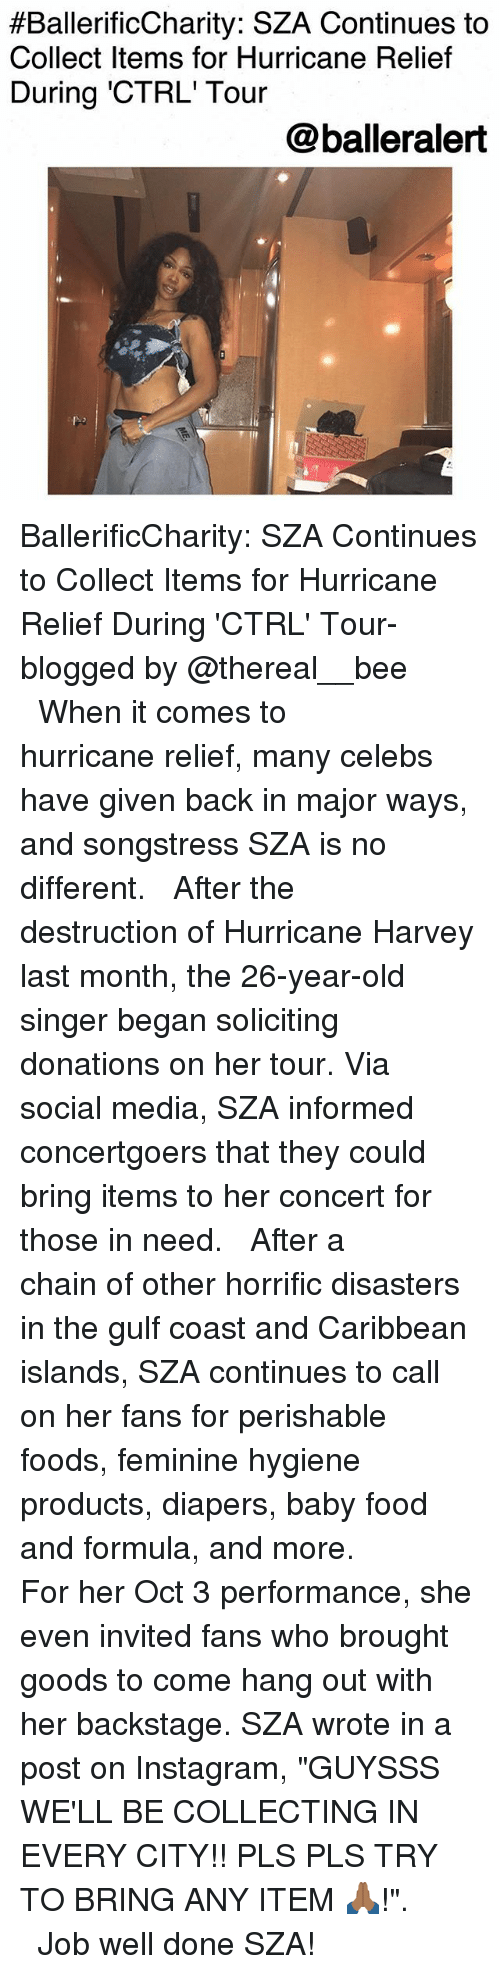 "Food, Instagram, and Memes:  #BallerificCharity. SZA Continues to  Collect Items for Hurricane Relief  During 'CTRL' Tour  @balleralert BallerificCharity: SZA Continues to Collect Items for Hurricane Relief During 'CTRL' Tour-blogged by @thereal__bee ⠀⠀⠀⠀⠀⠀⠀⠀⠀ ⠀⠀ When it comes to hurricane relief, many celebs have given back in major ways, and songstress SZA is no different. ⠀⠀⠀⠀⠀⠀⠀⠀⠀ ⠀⠀ After the destruction of Hurricane Harvey last month, the 26-year-old singer began soliciting donations on her tour. Via social media, SZA informed concertgoers that they could bring items to her concert for those in need. ⠀⠀⠀⠀⠀⠀⠀⠀⠀ ⠀⠀ After a chain of other horrific disasters in the gulf coast and Caribbean islands, SZA continues to call on her fans for perishable foods, feminine hygiene products, diapers, baby food and formula, and more. ⠀⠀⠀⠀⠀⠀⠀⠀⠀ ⠀⠀ For her Oct 3 performance, she even invited fans who brought goods to come hang out with her backstage. SZA wrote in a post on Instagram, ""GUYSSS WE'LL BE COLLECTING IN EVERY CITY!! PLS PLS TRY TO BRING ANY ITEM 🙏🏾!"". ⠀⠀⠀⠀⠀⠀⠀⠀⠀ ⠀⠀ Job well done SZA!"